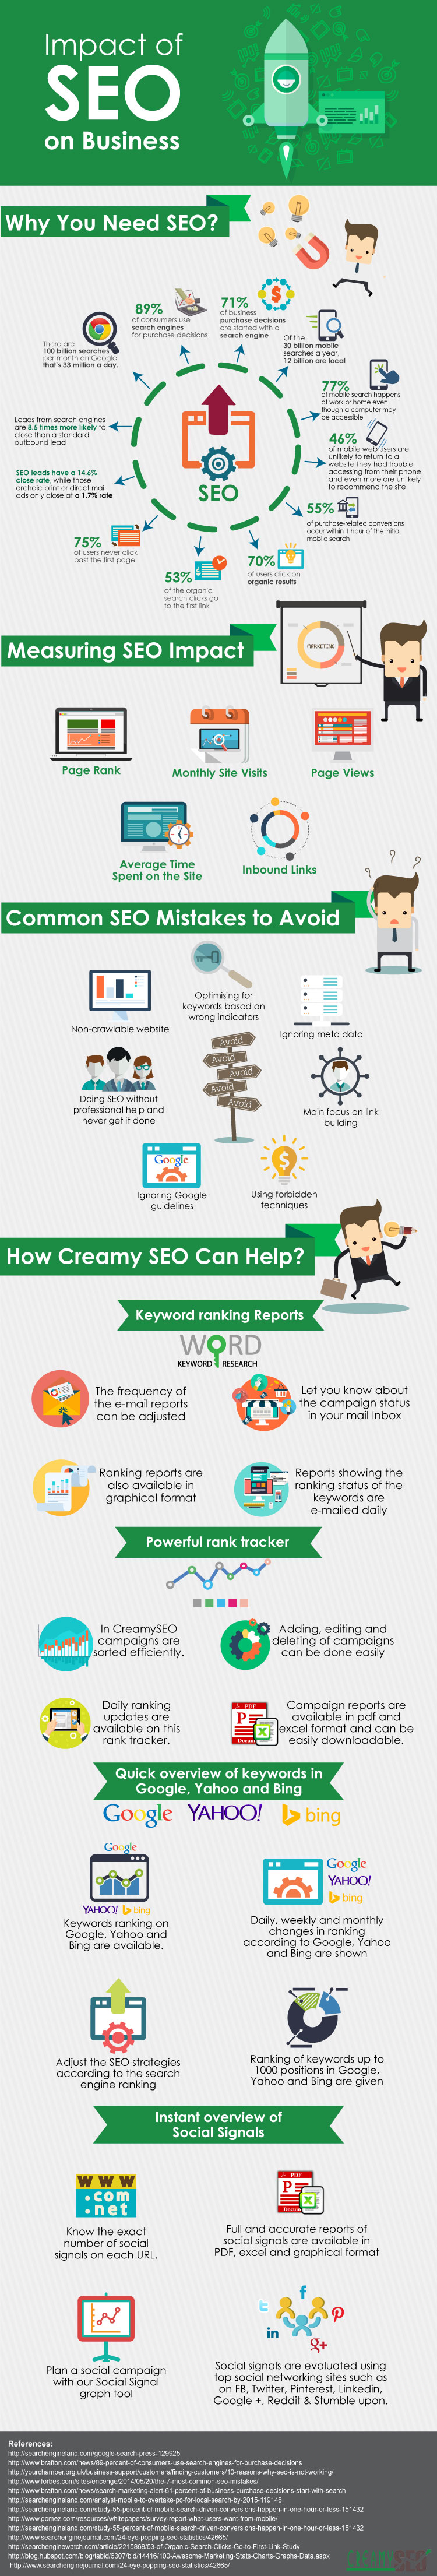 This infographic is about the impact of SEO on a business